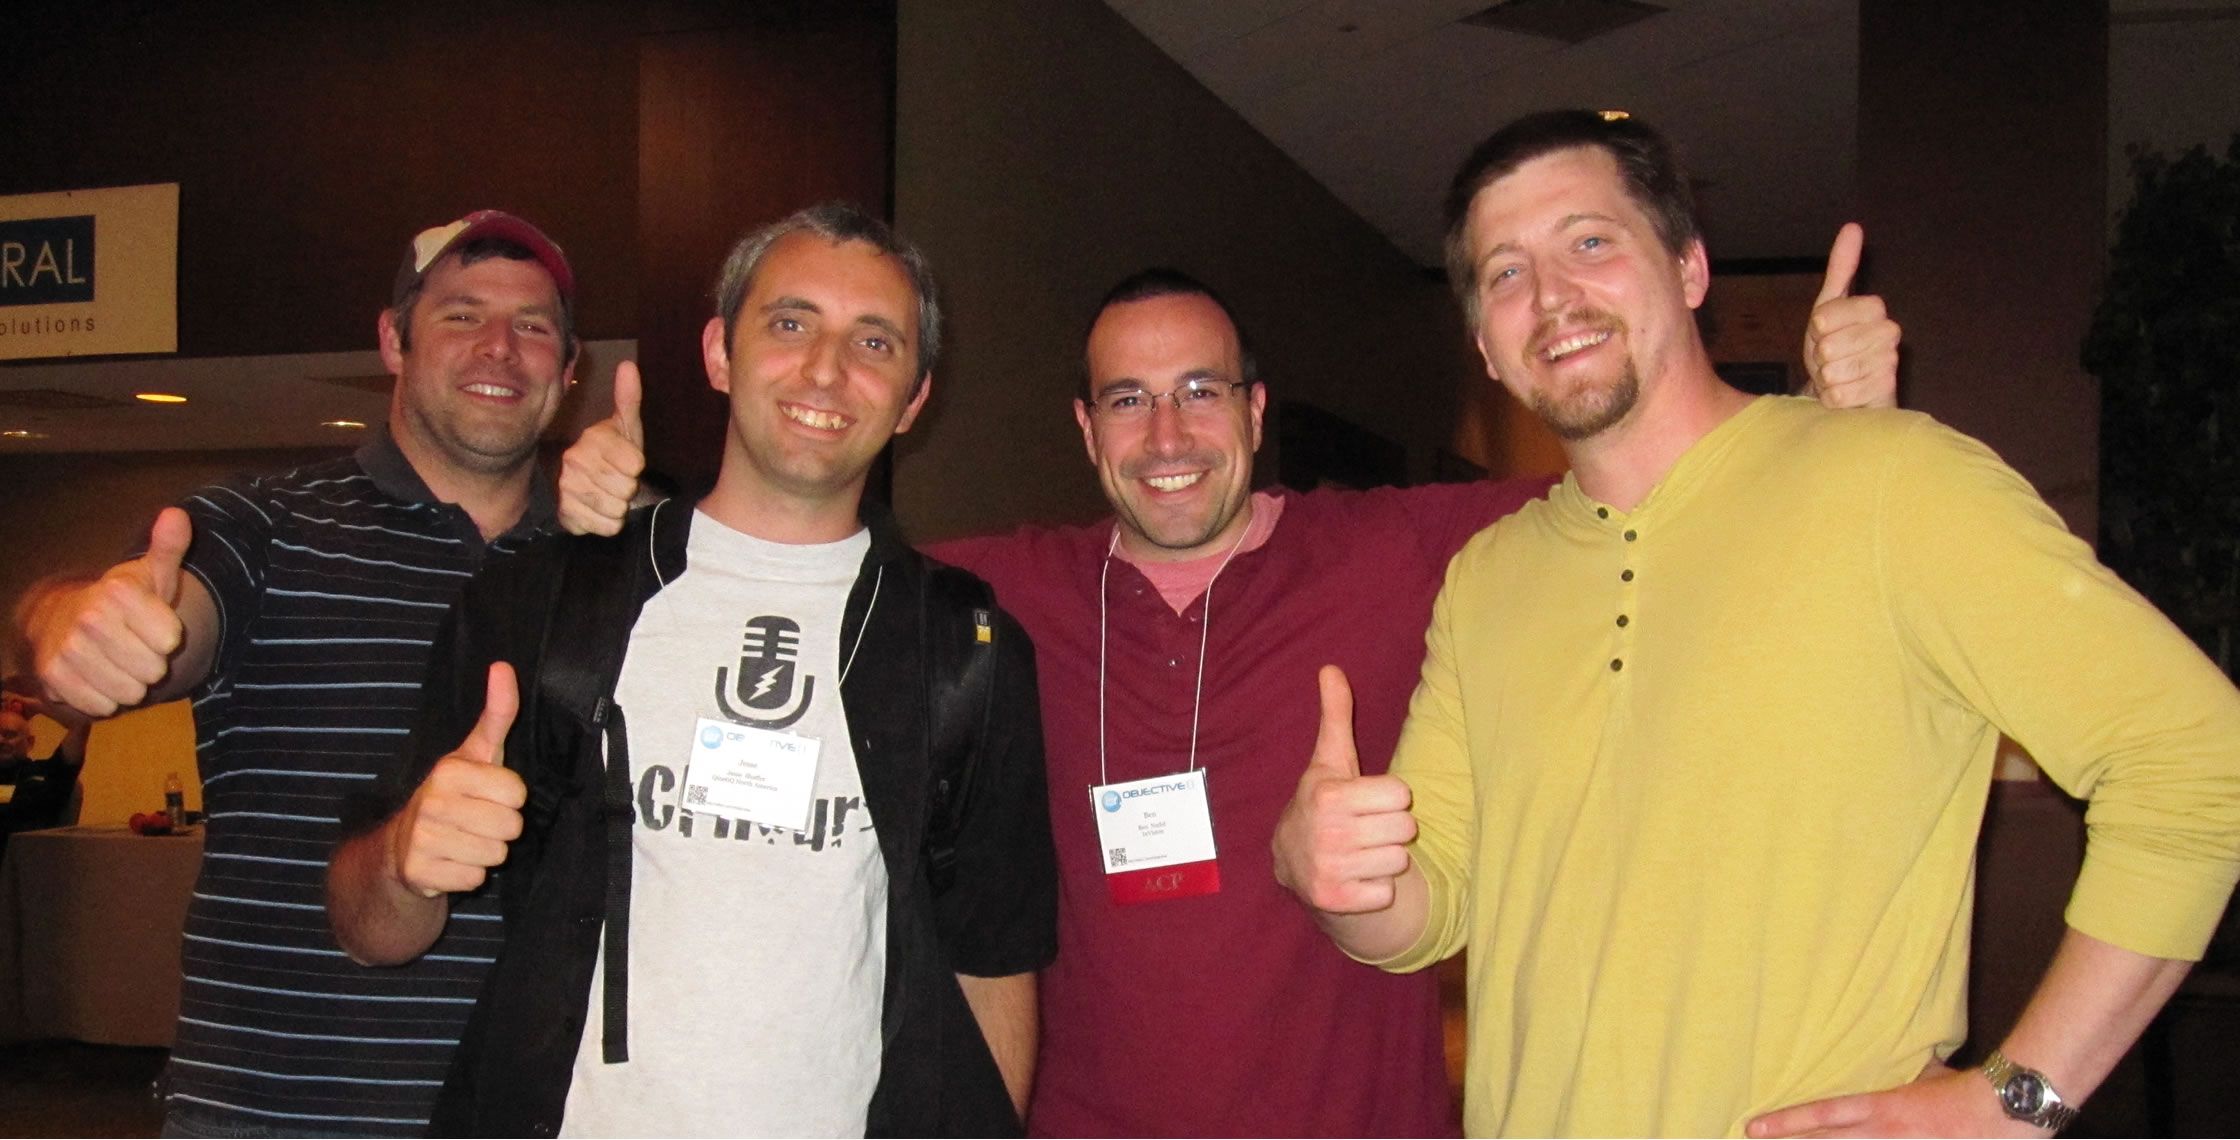 Ben Nadel at cf.Objective() 2012 (Minneapolis, MN) with: Erik Meier, Jesse Shaffer, and Bob Gray